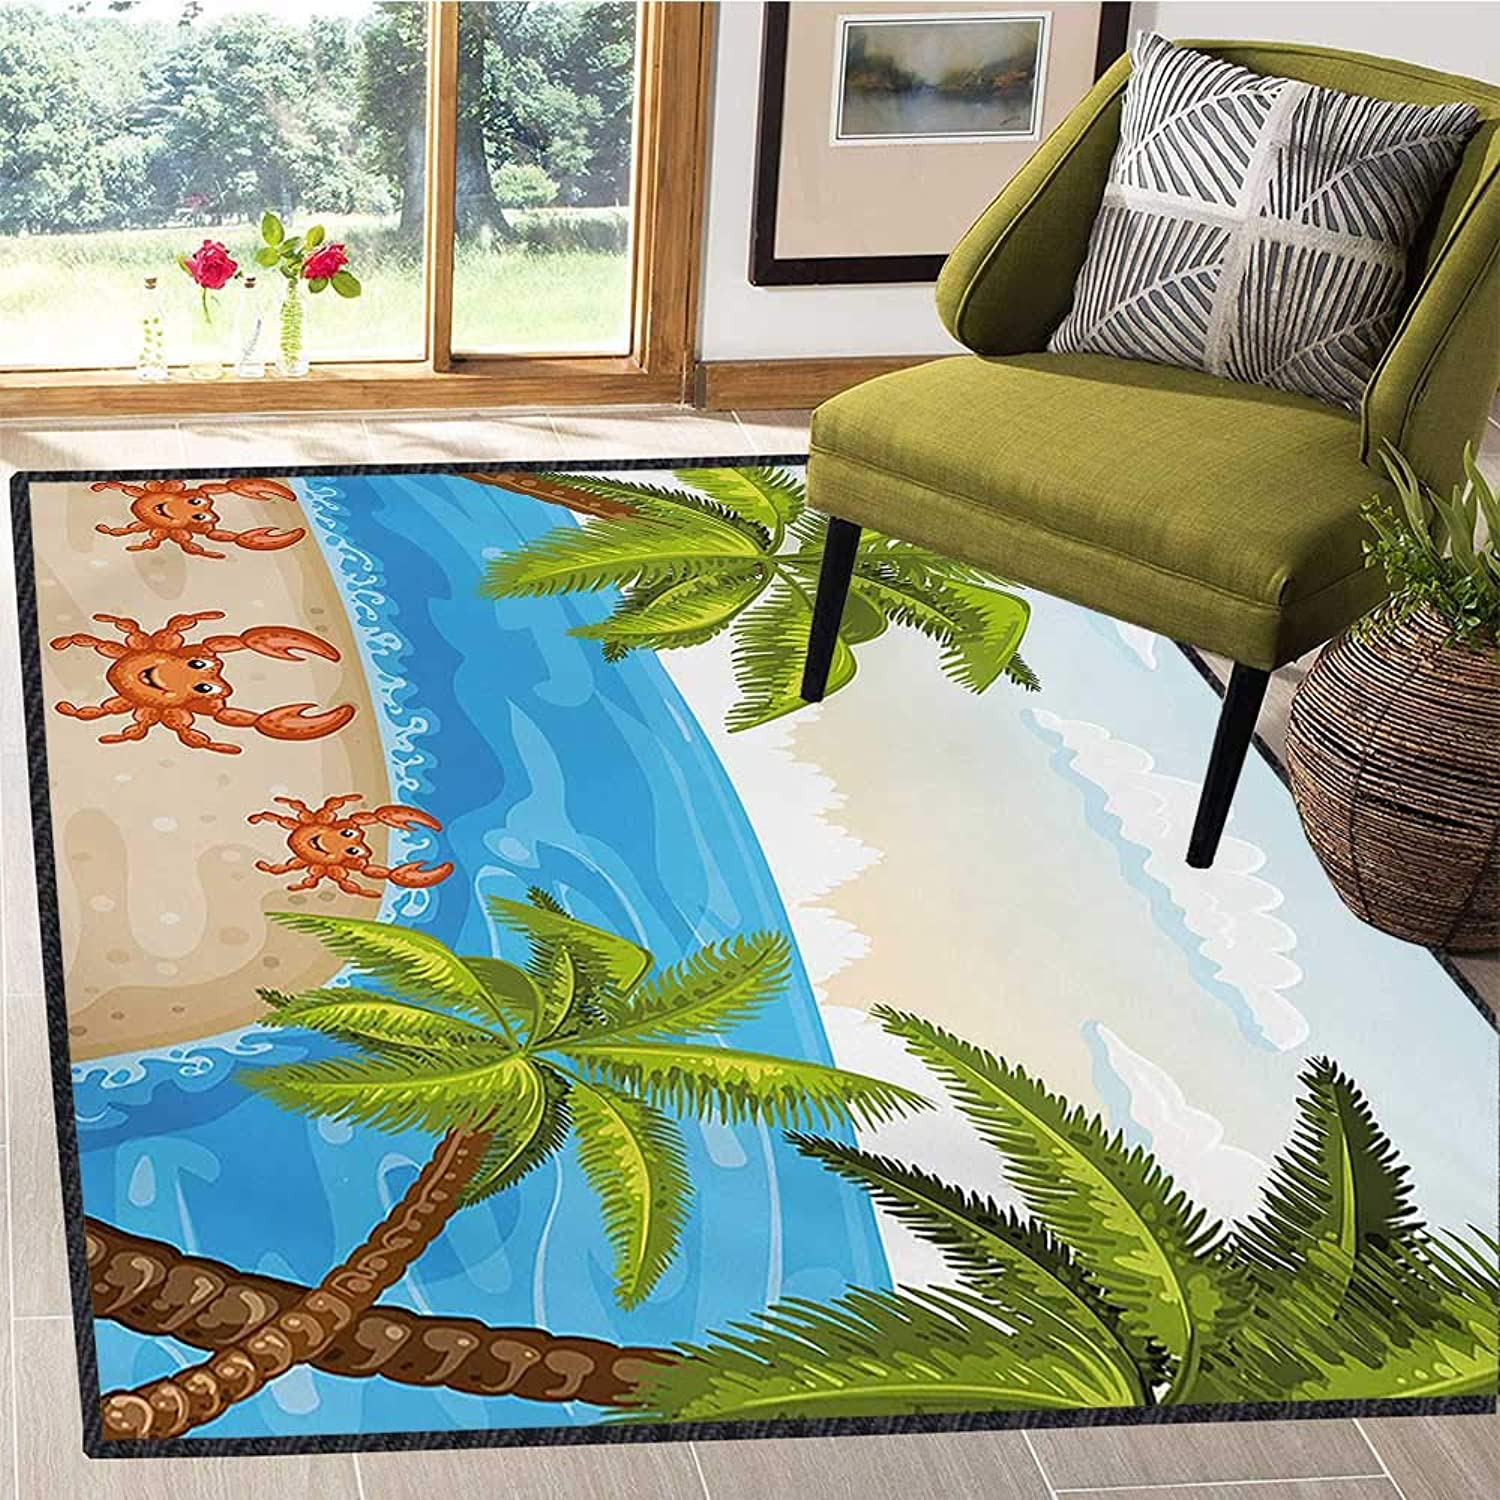 Crabs, Door Mats Area Rug, Cartoon Style Illustration of The Palm Trees and Crabs on Beach Cloudy Sky Print, Door Mats for Inside Non Slip Backing 6x7 Ft Aqua Beige